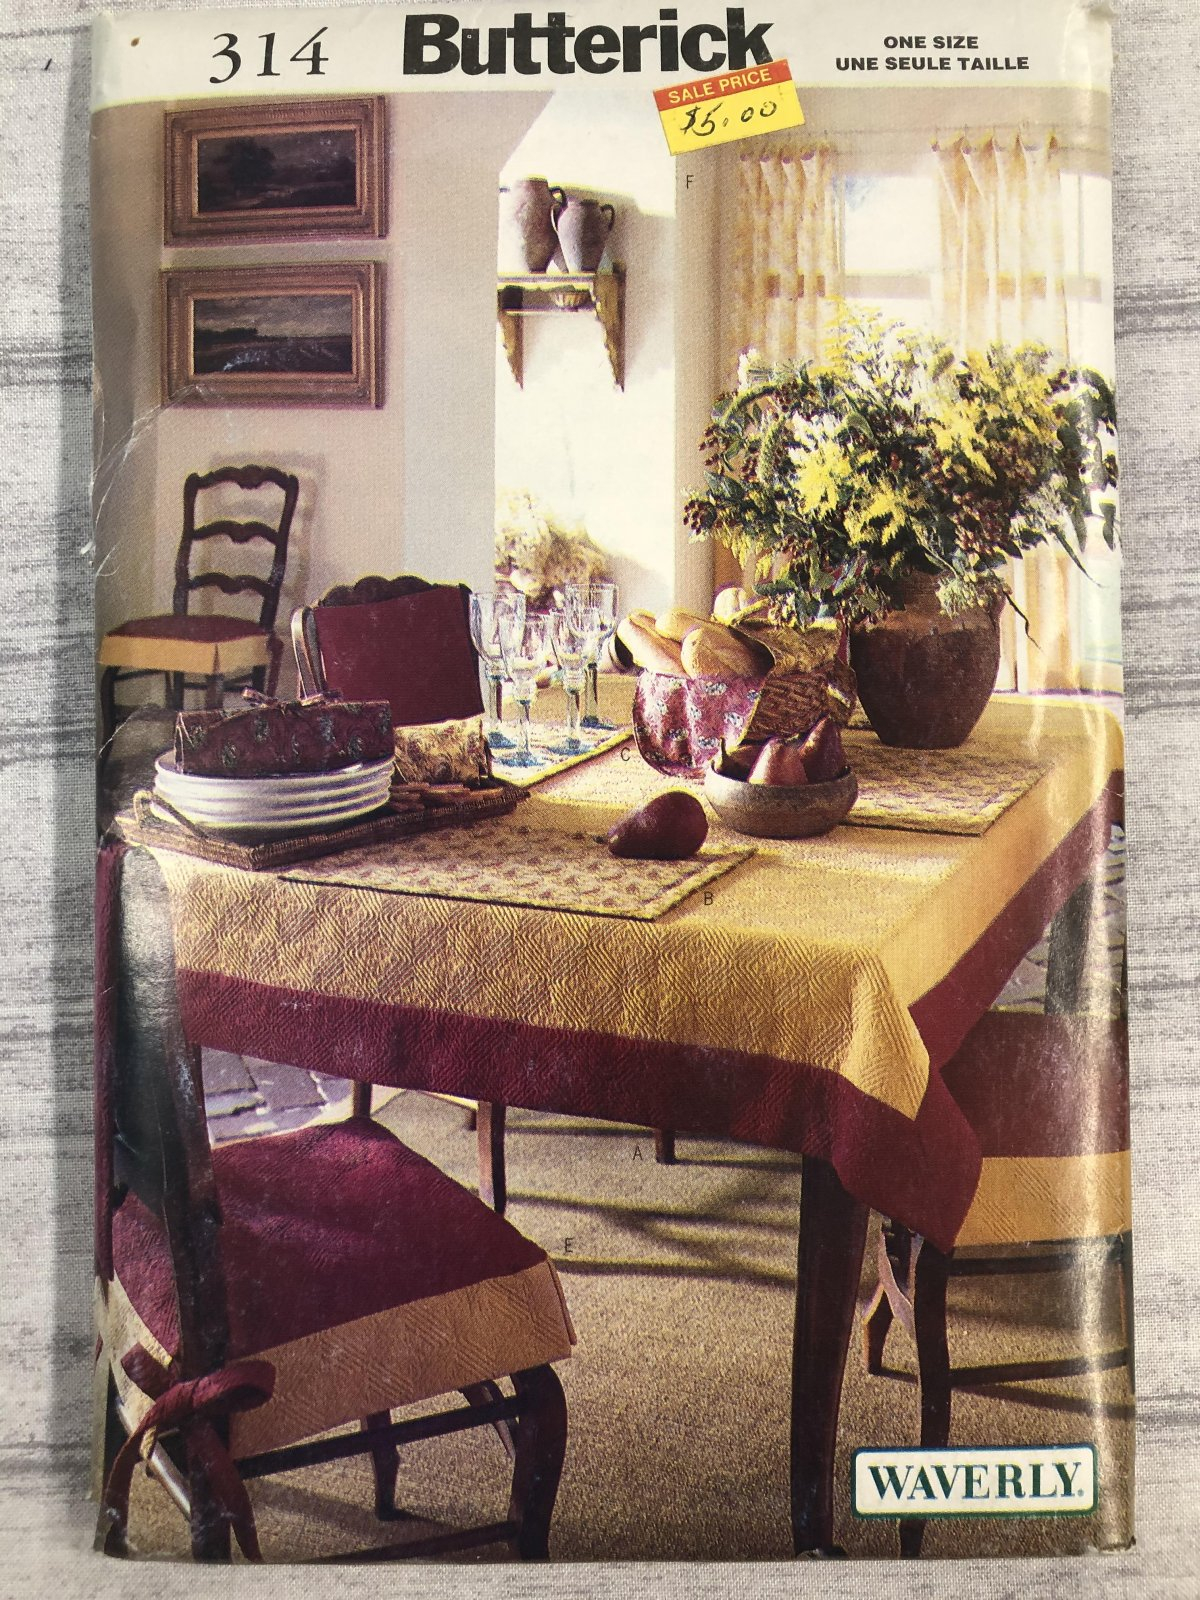 Butterick Waverly Dining Room 0314